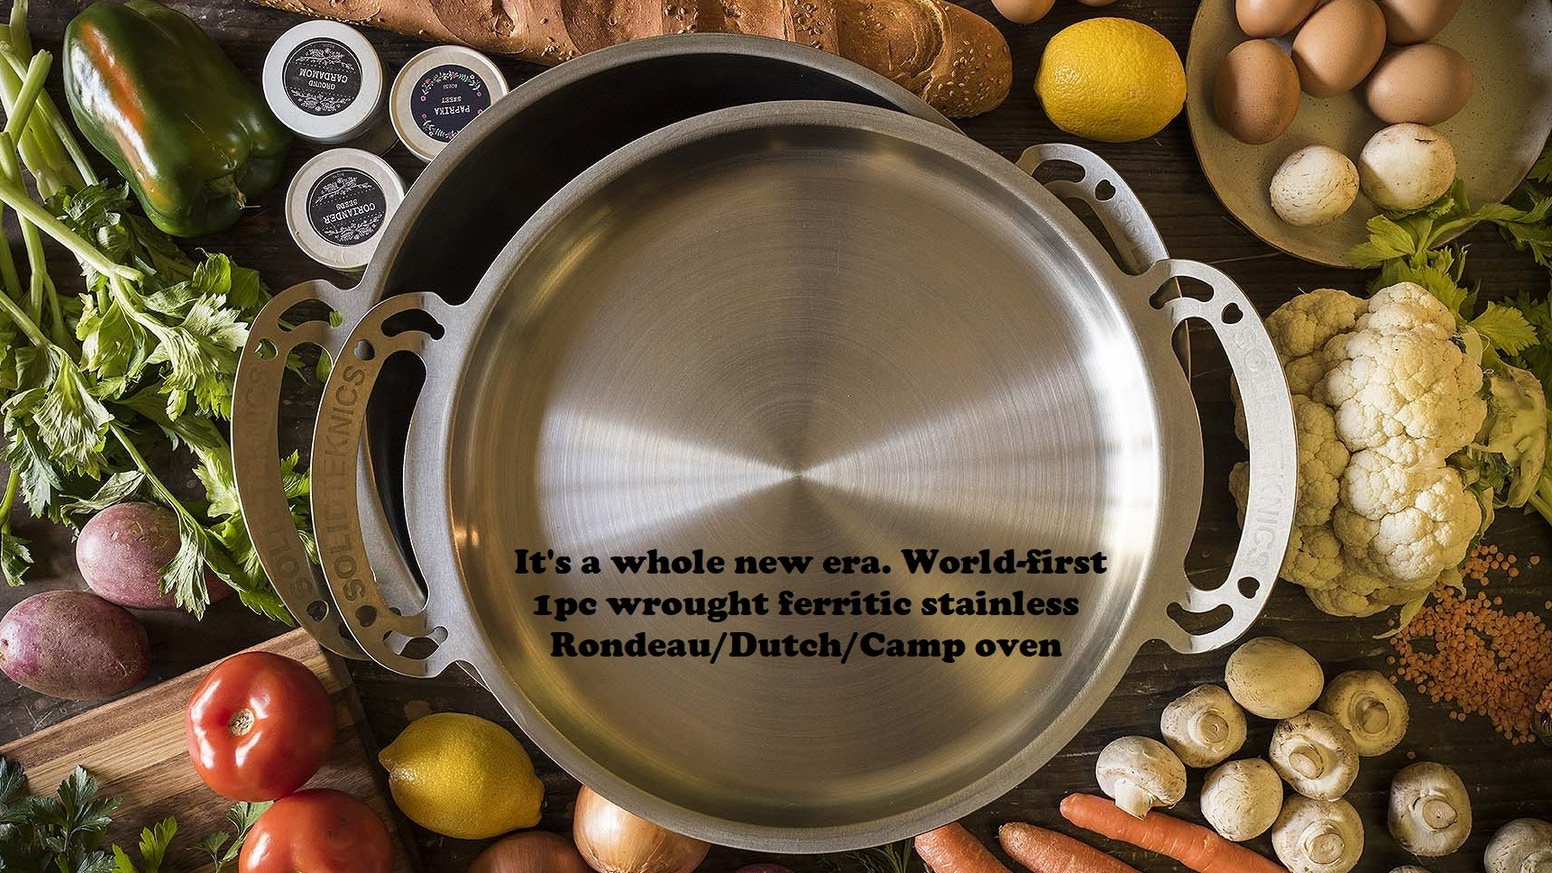 33cm Rondeau and 33cm Skillet-lid. Lighter, more conductive, more durable than cast or old stainless: no clad/ply welds/rivets/screws.